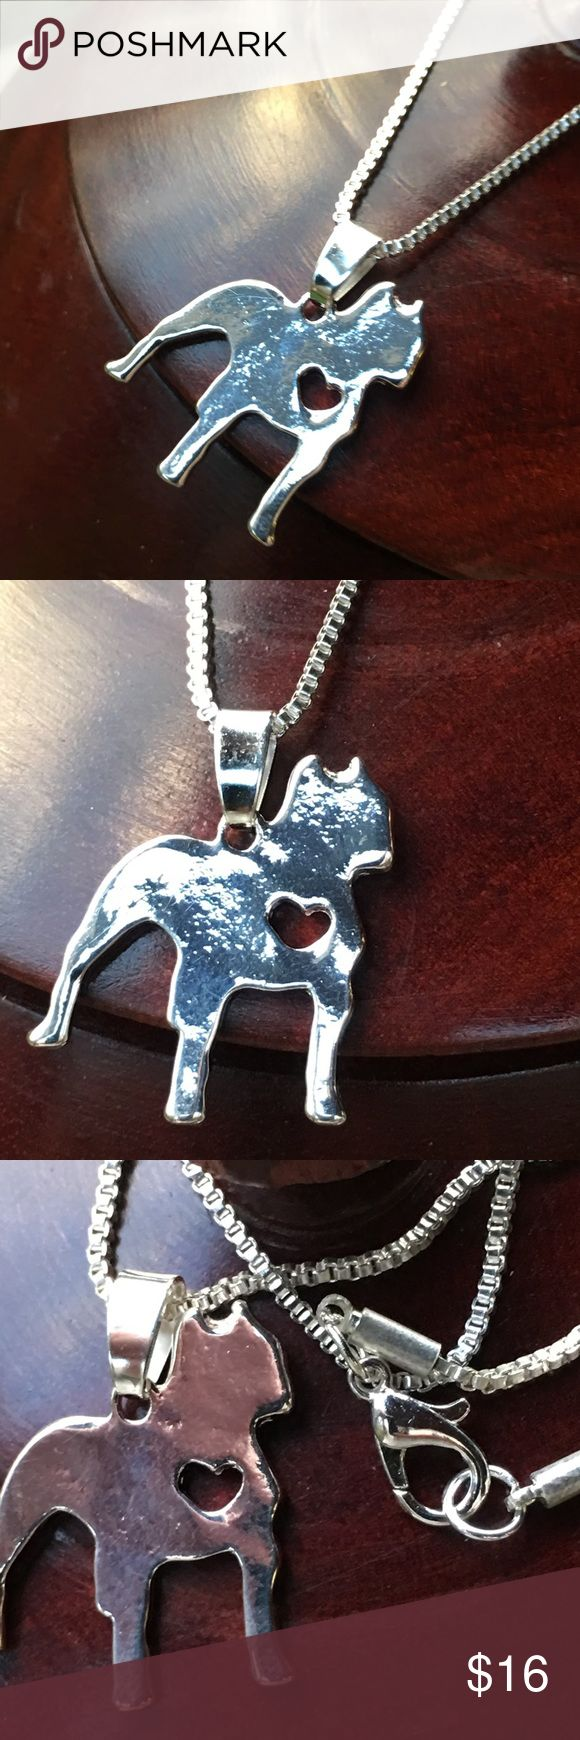 Bulldog/ boxer 💕love doggy necklace Adorable doggie necklace. Perfect gift for any dog lover. Boxer, love ❤️ necklace. This silhouette can represent many breeds including boxer, bulldog pit bull or your favorite mutt. Boutique items - prices are firm unless bundled. Jewelry Necklaces